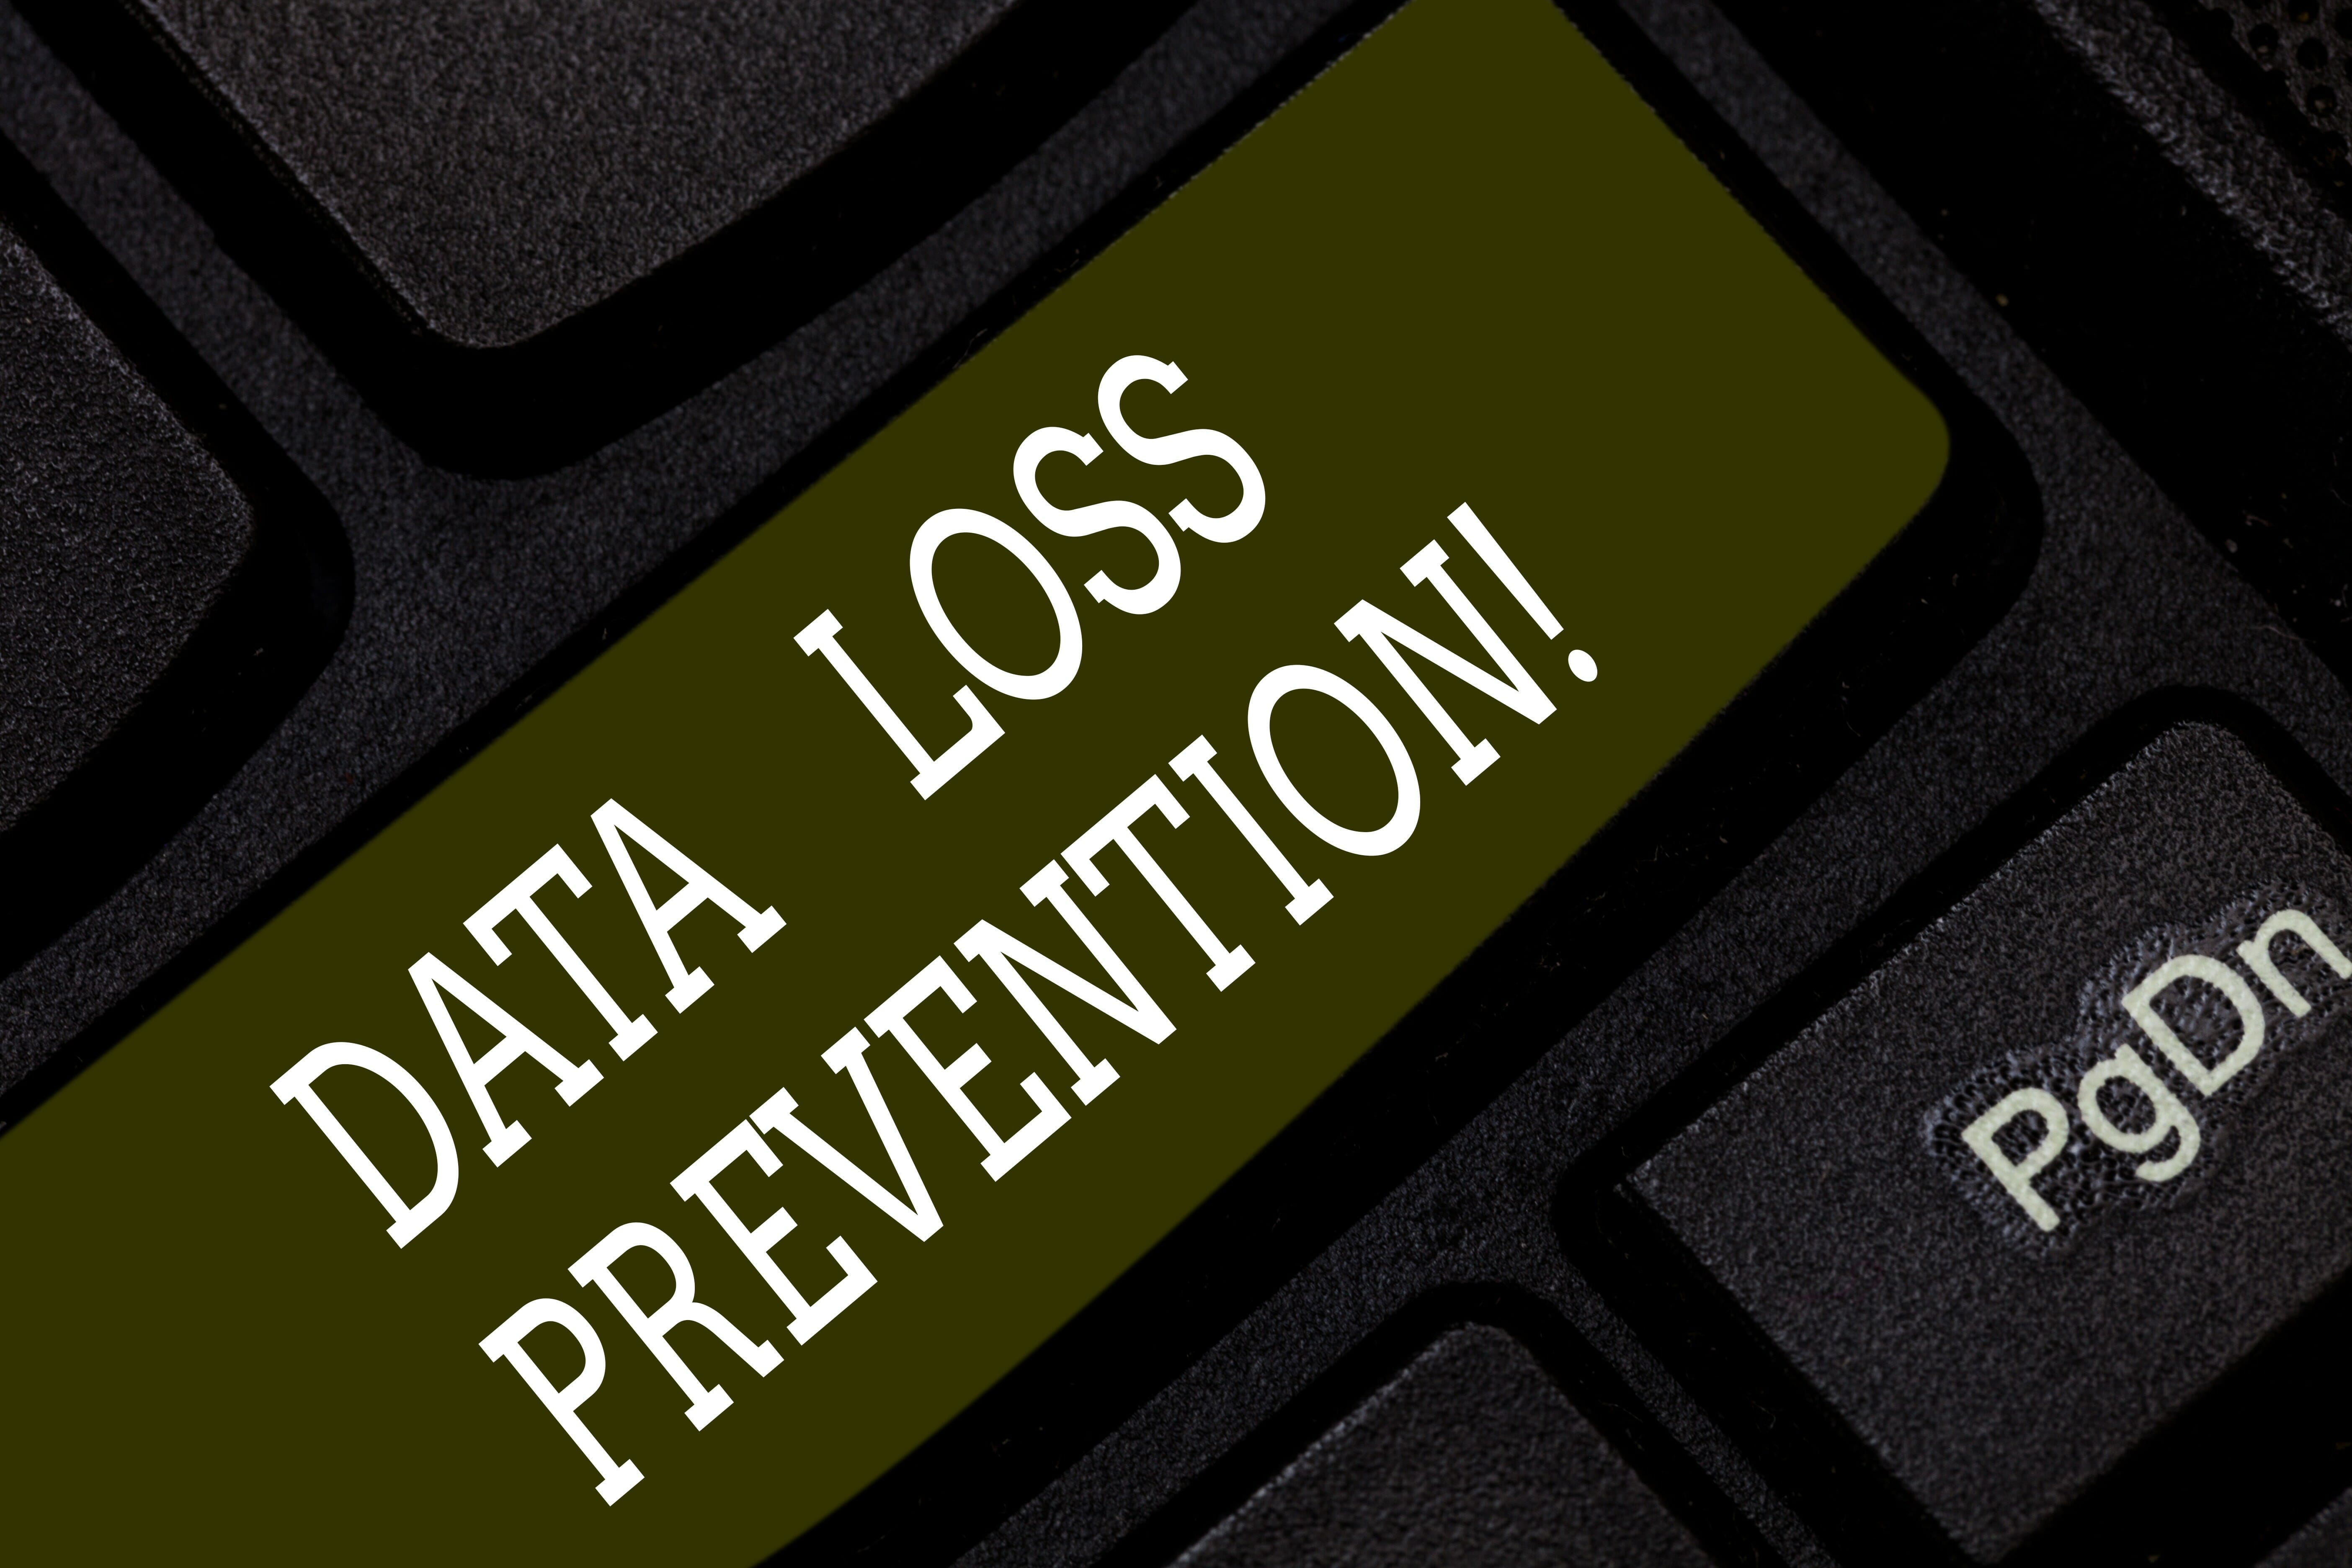 Writing note showing Data Loss Prevention